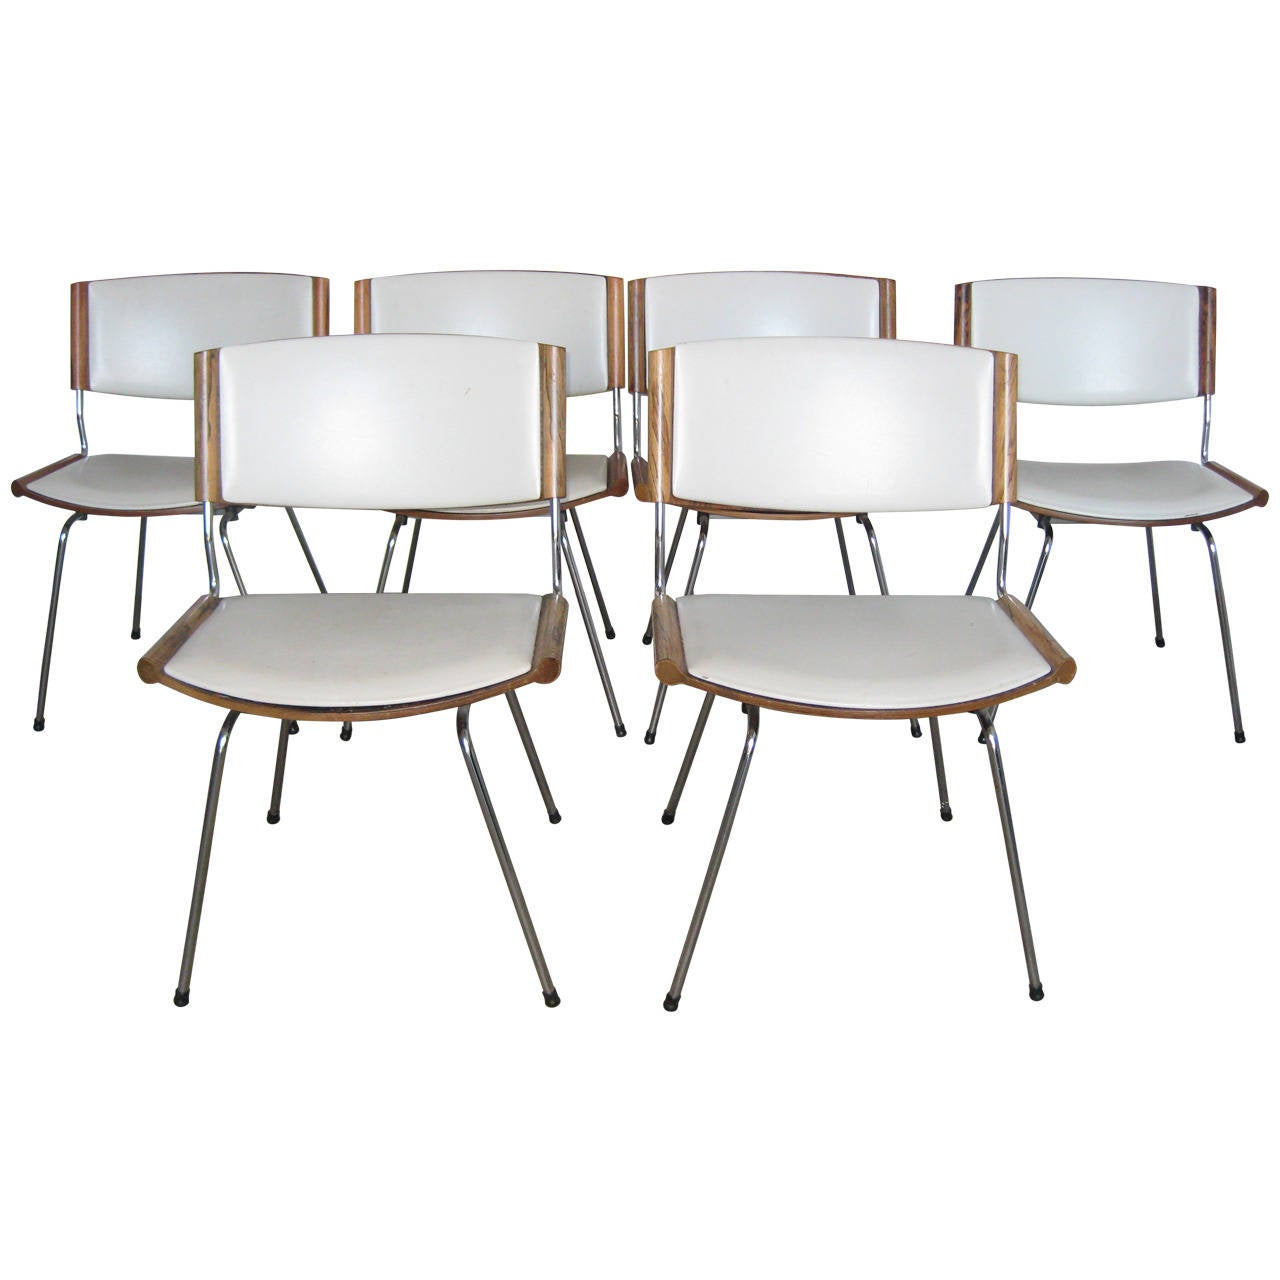 Nanna dietzel stackable dining chairs at stdibs